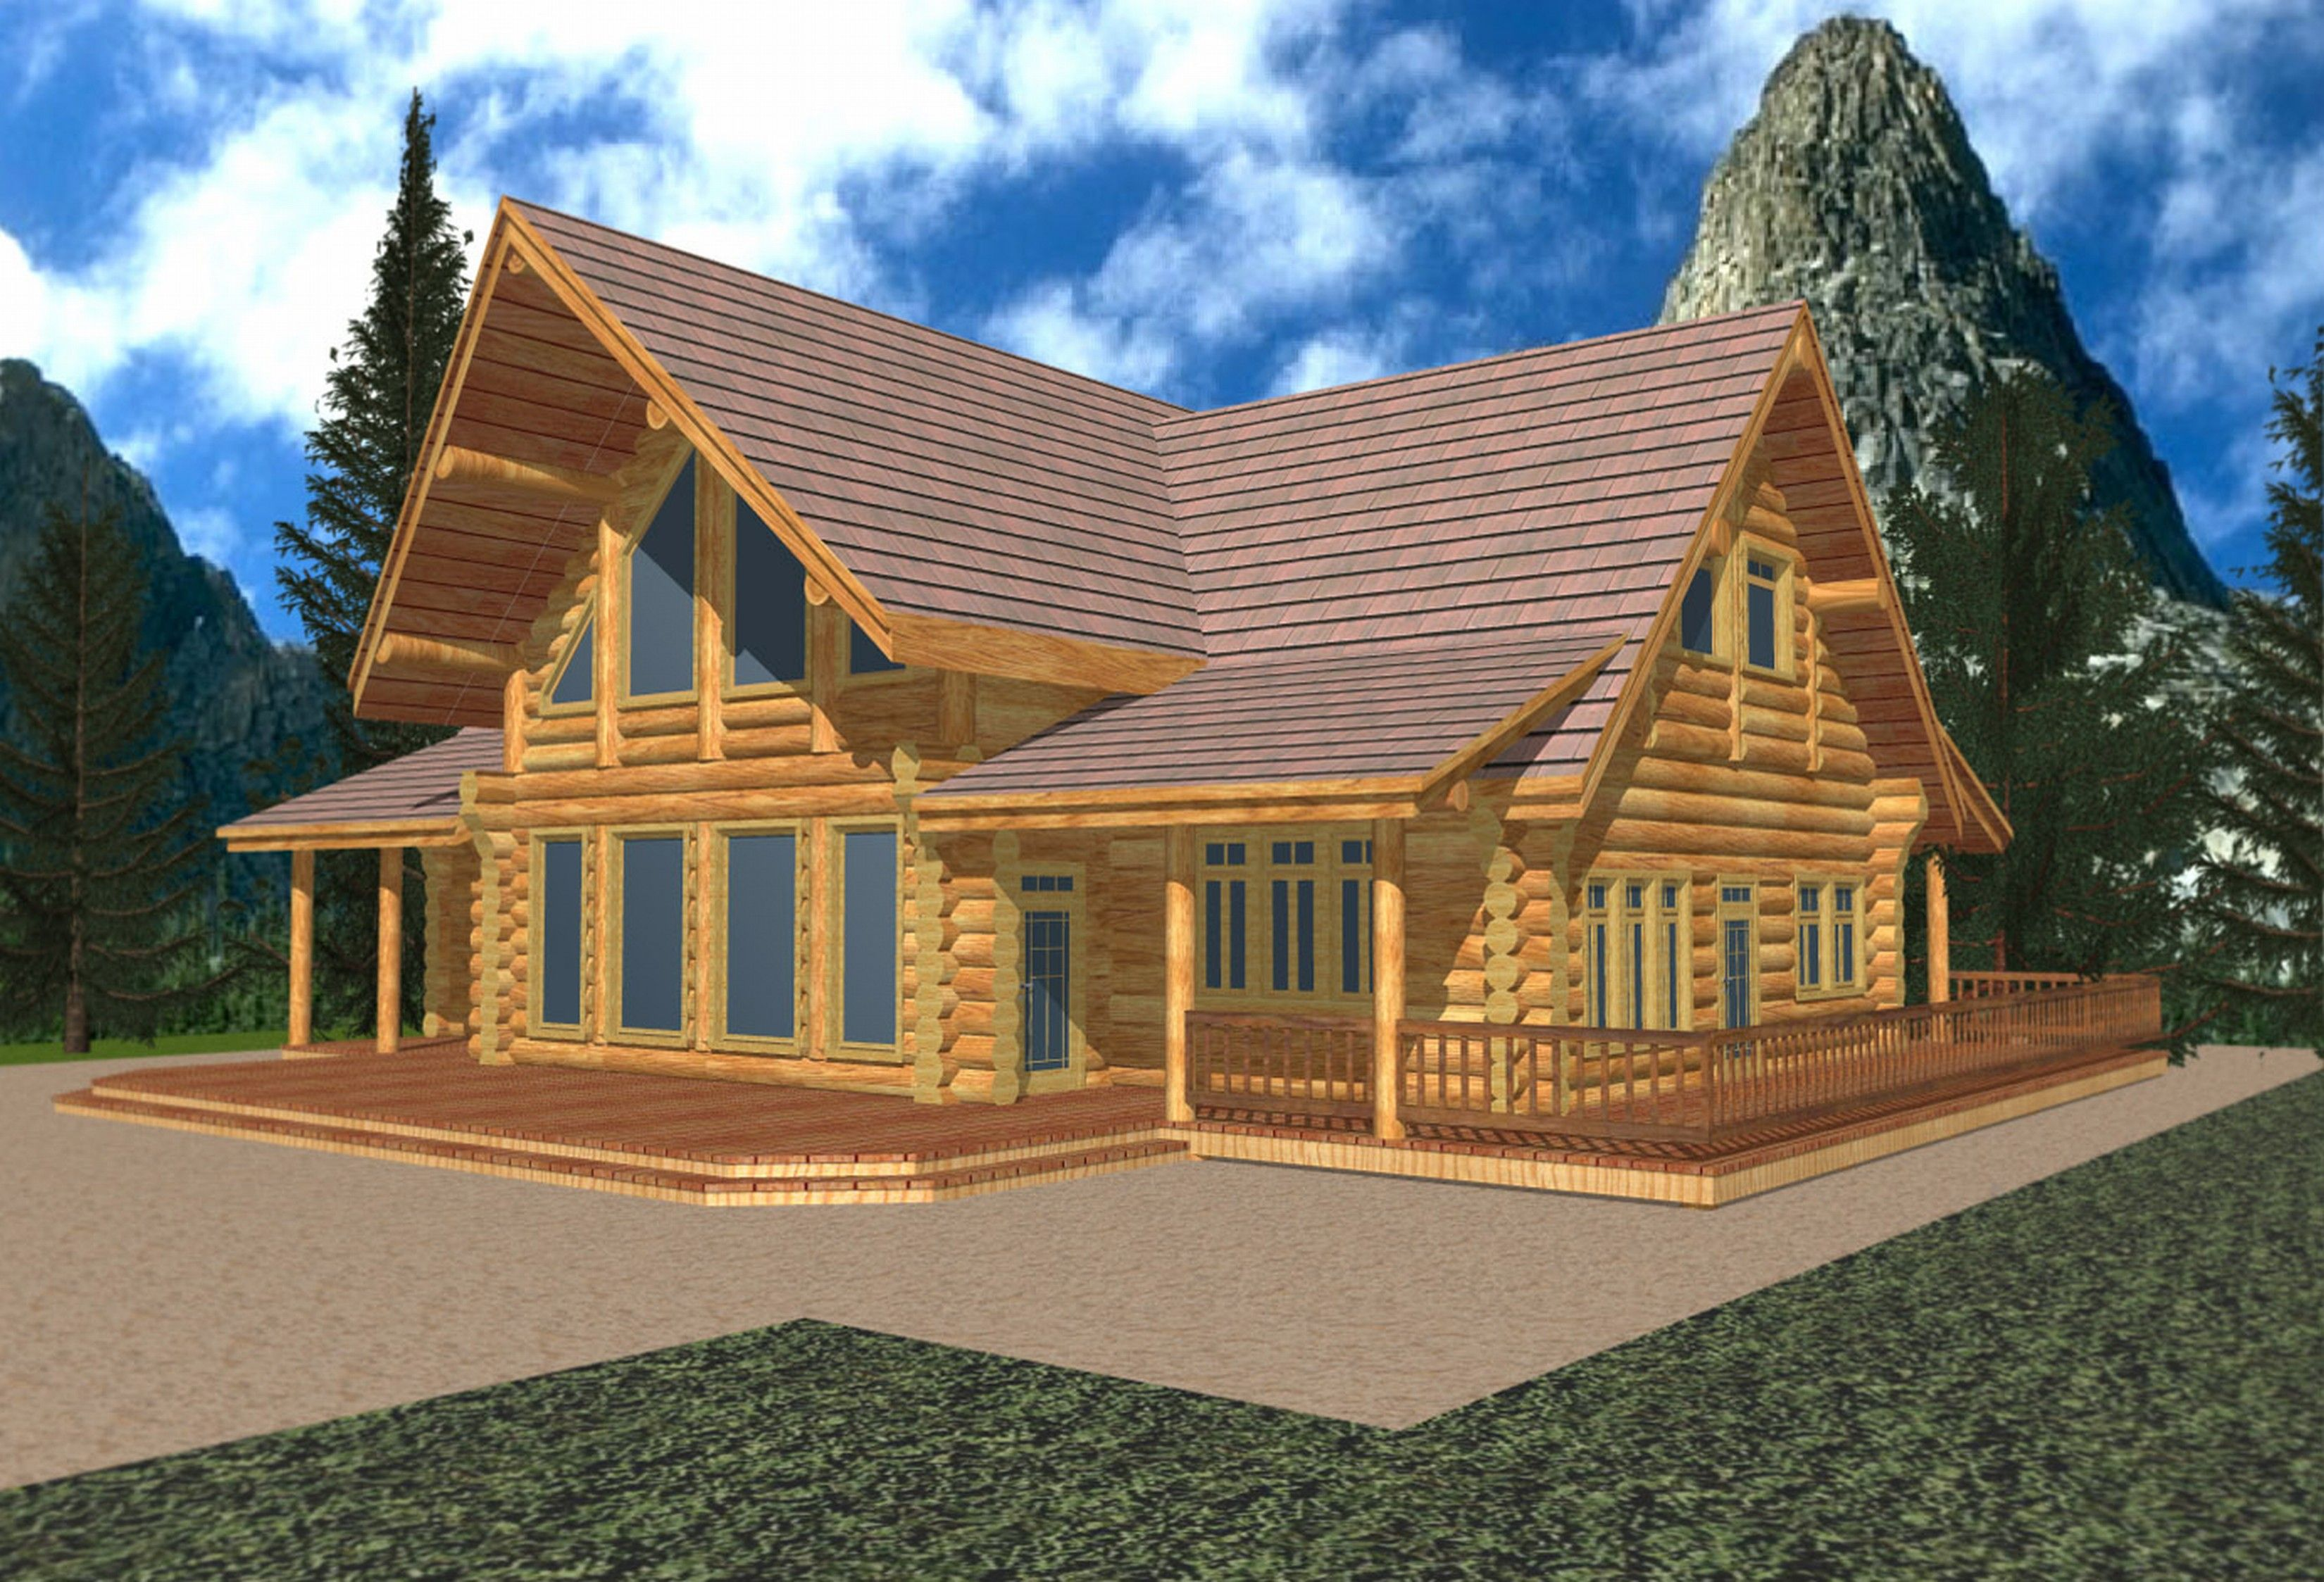 Middleton Log Home Floor Plan Exterior | Mountain Cabin LOVE | Pinterest |  Logs, Cabin And Log Cabins